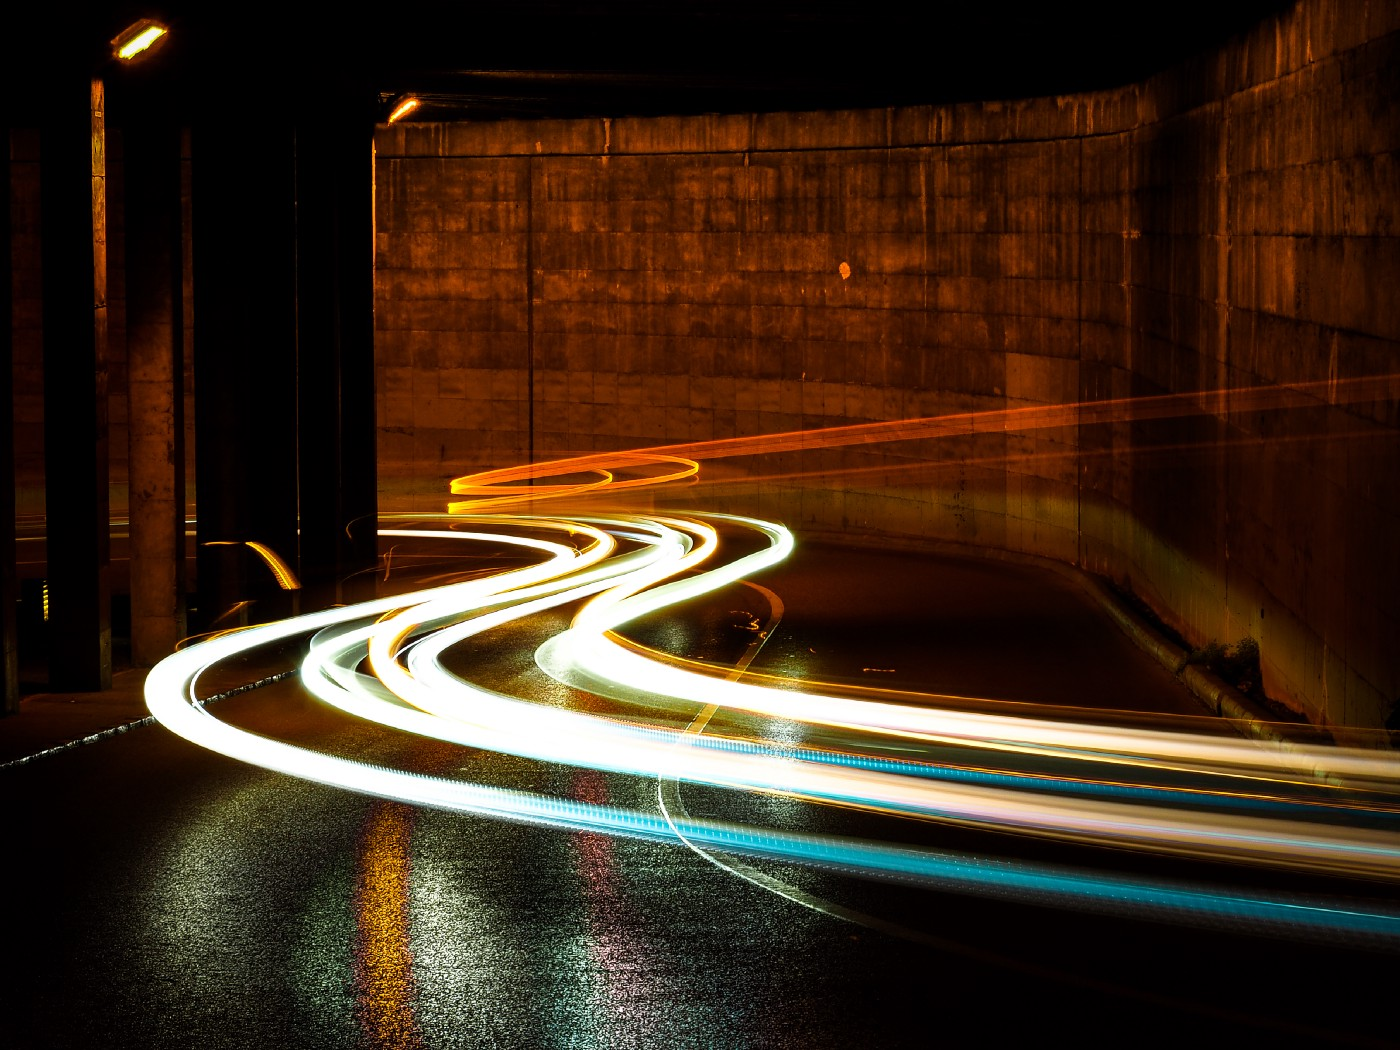 Light moving fast, signifying speed